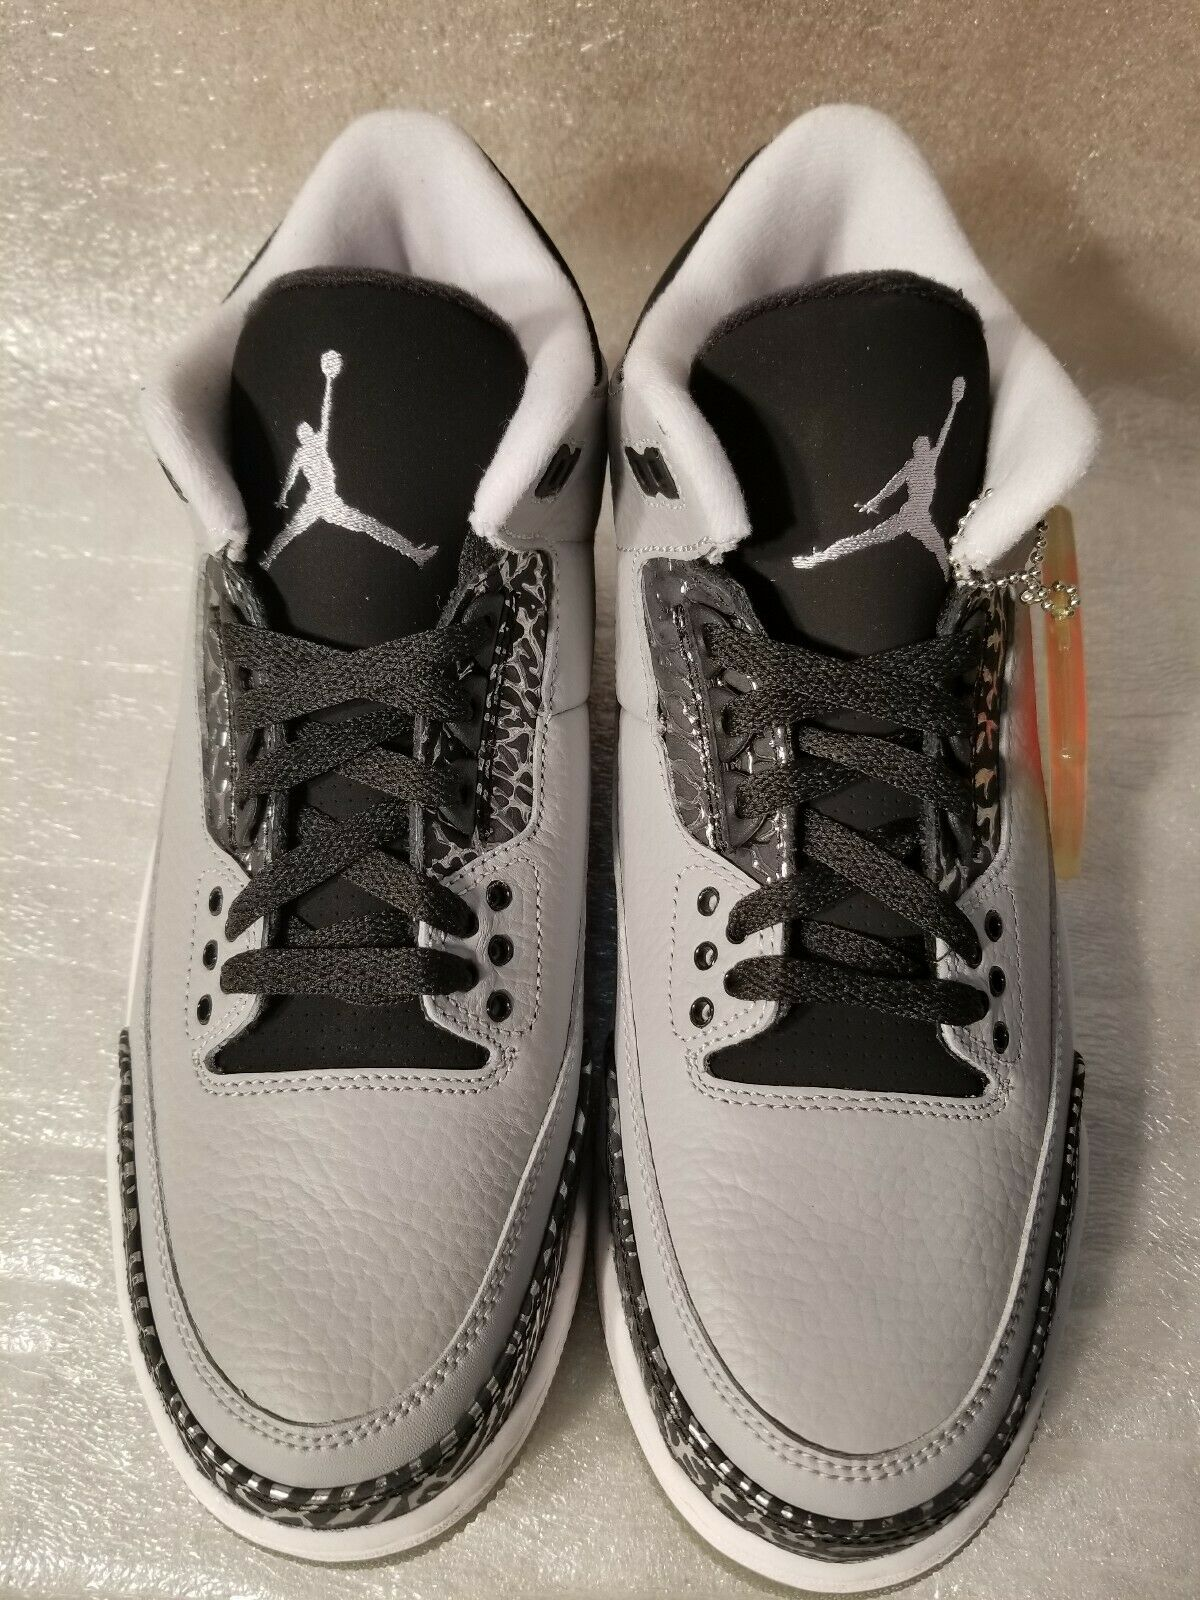 Mens Nike Air Jordan 3 Retro Size 10 136064-004 Wolf Grey Silver Black White